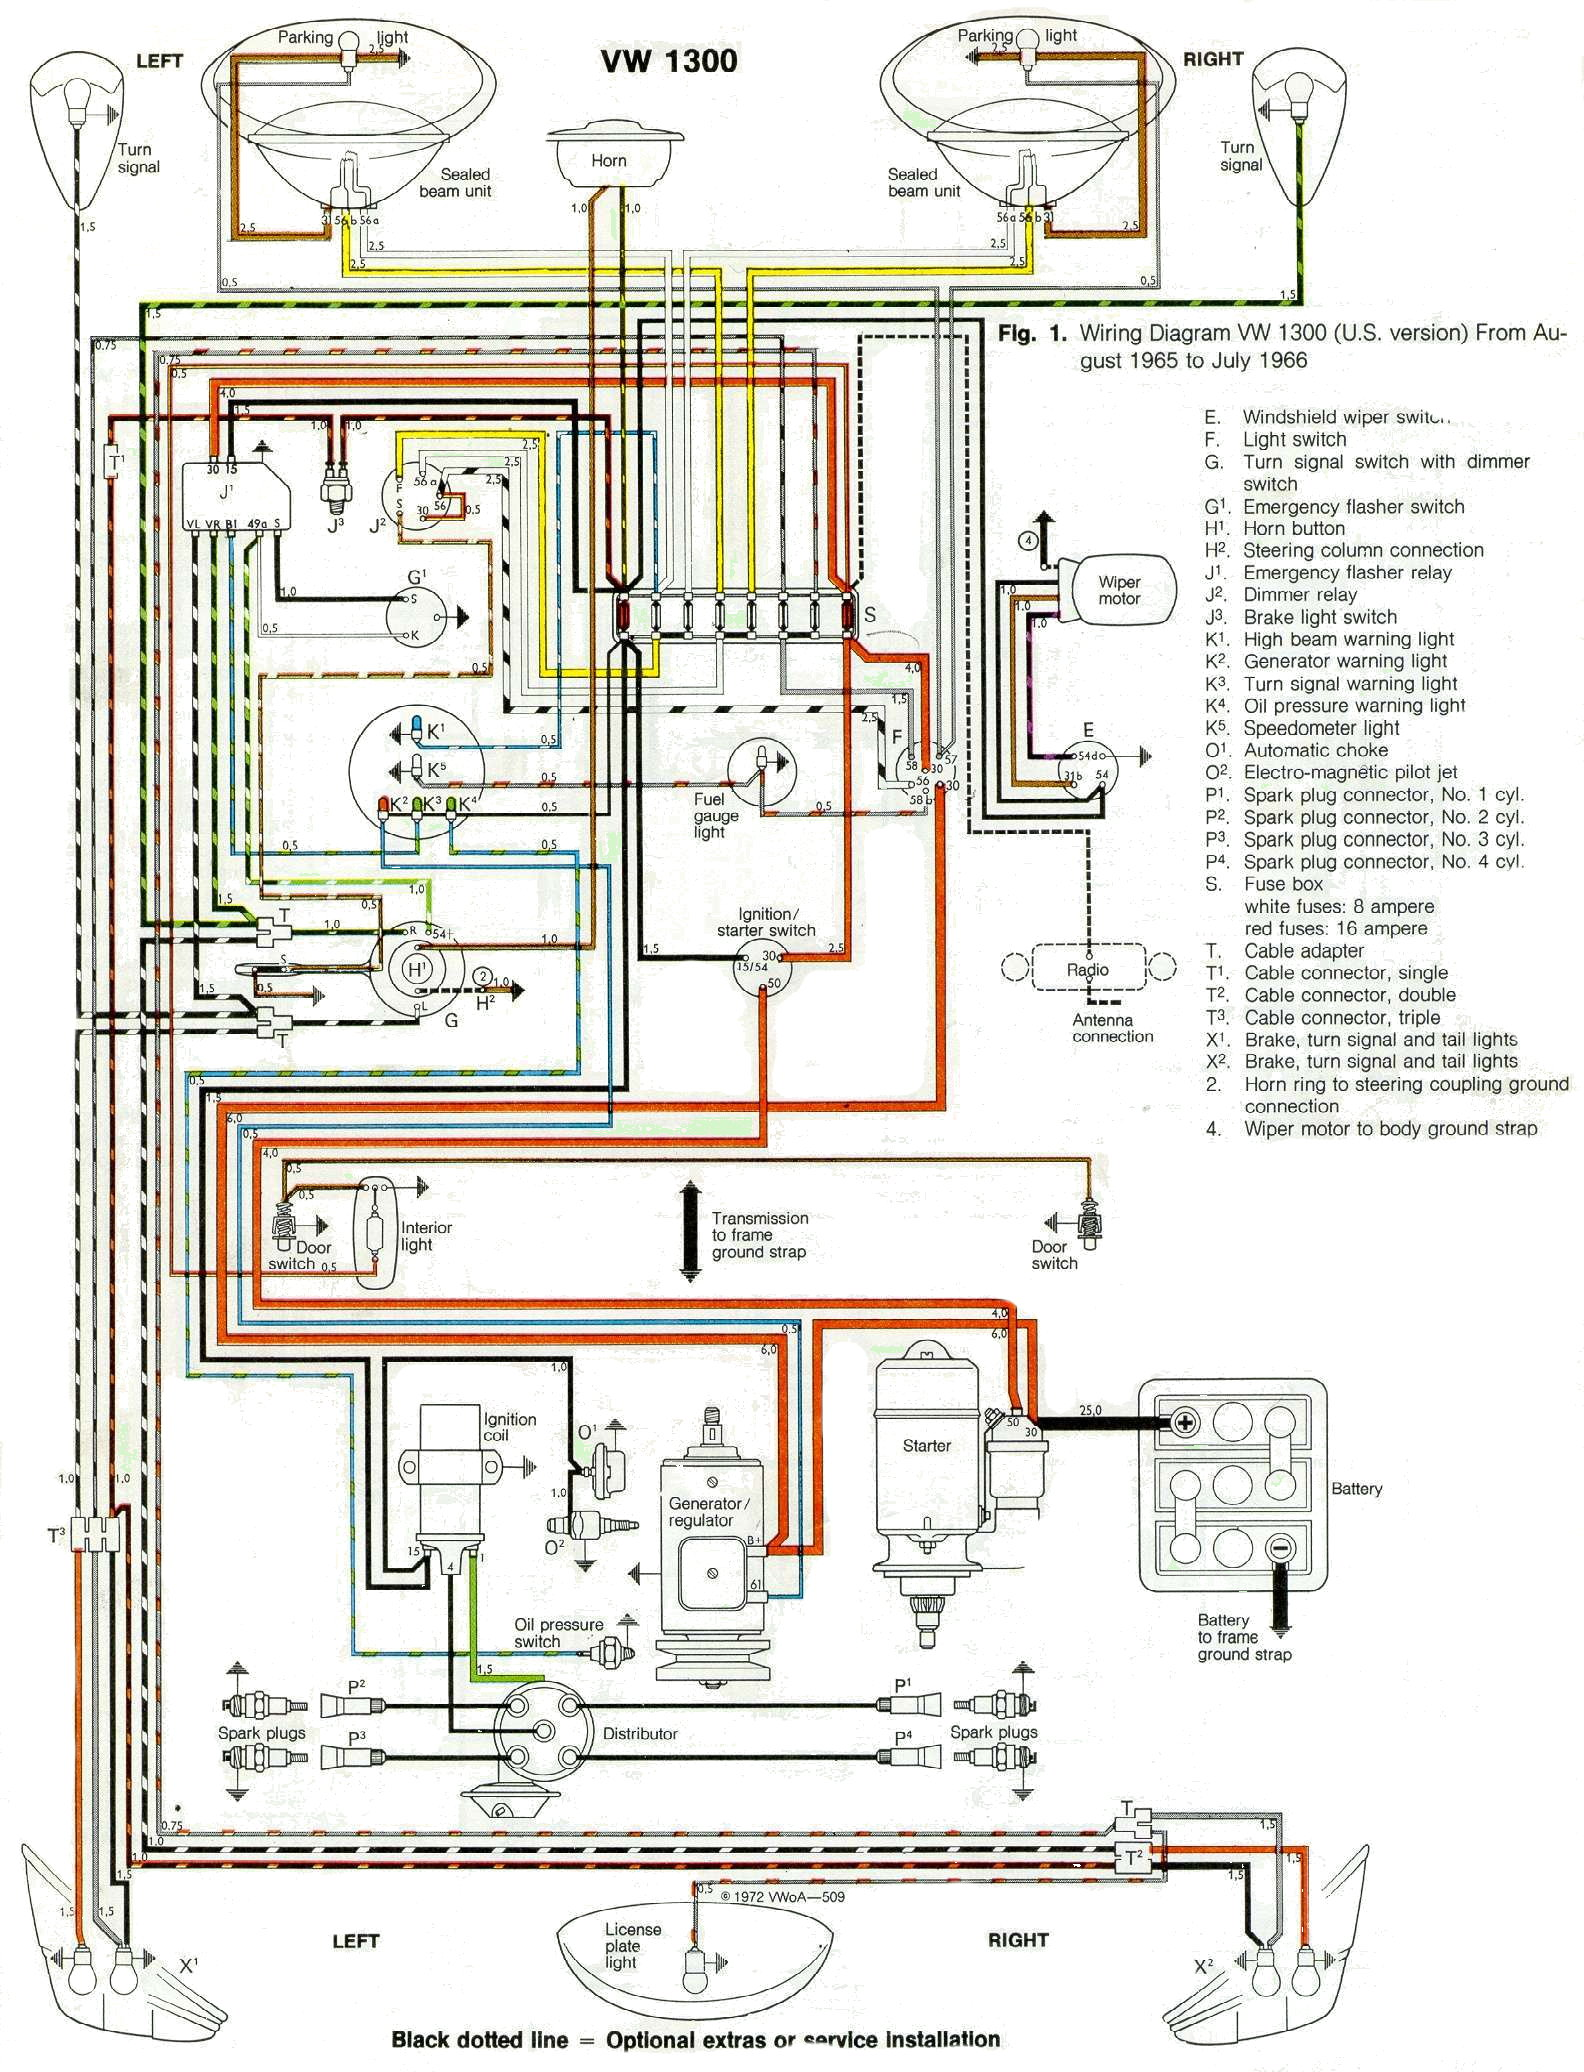 1966 Wiring 1966 wiring diagram vw beetle electronic ignition wiring diagram at bayanpartner.co